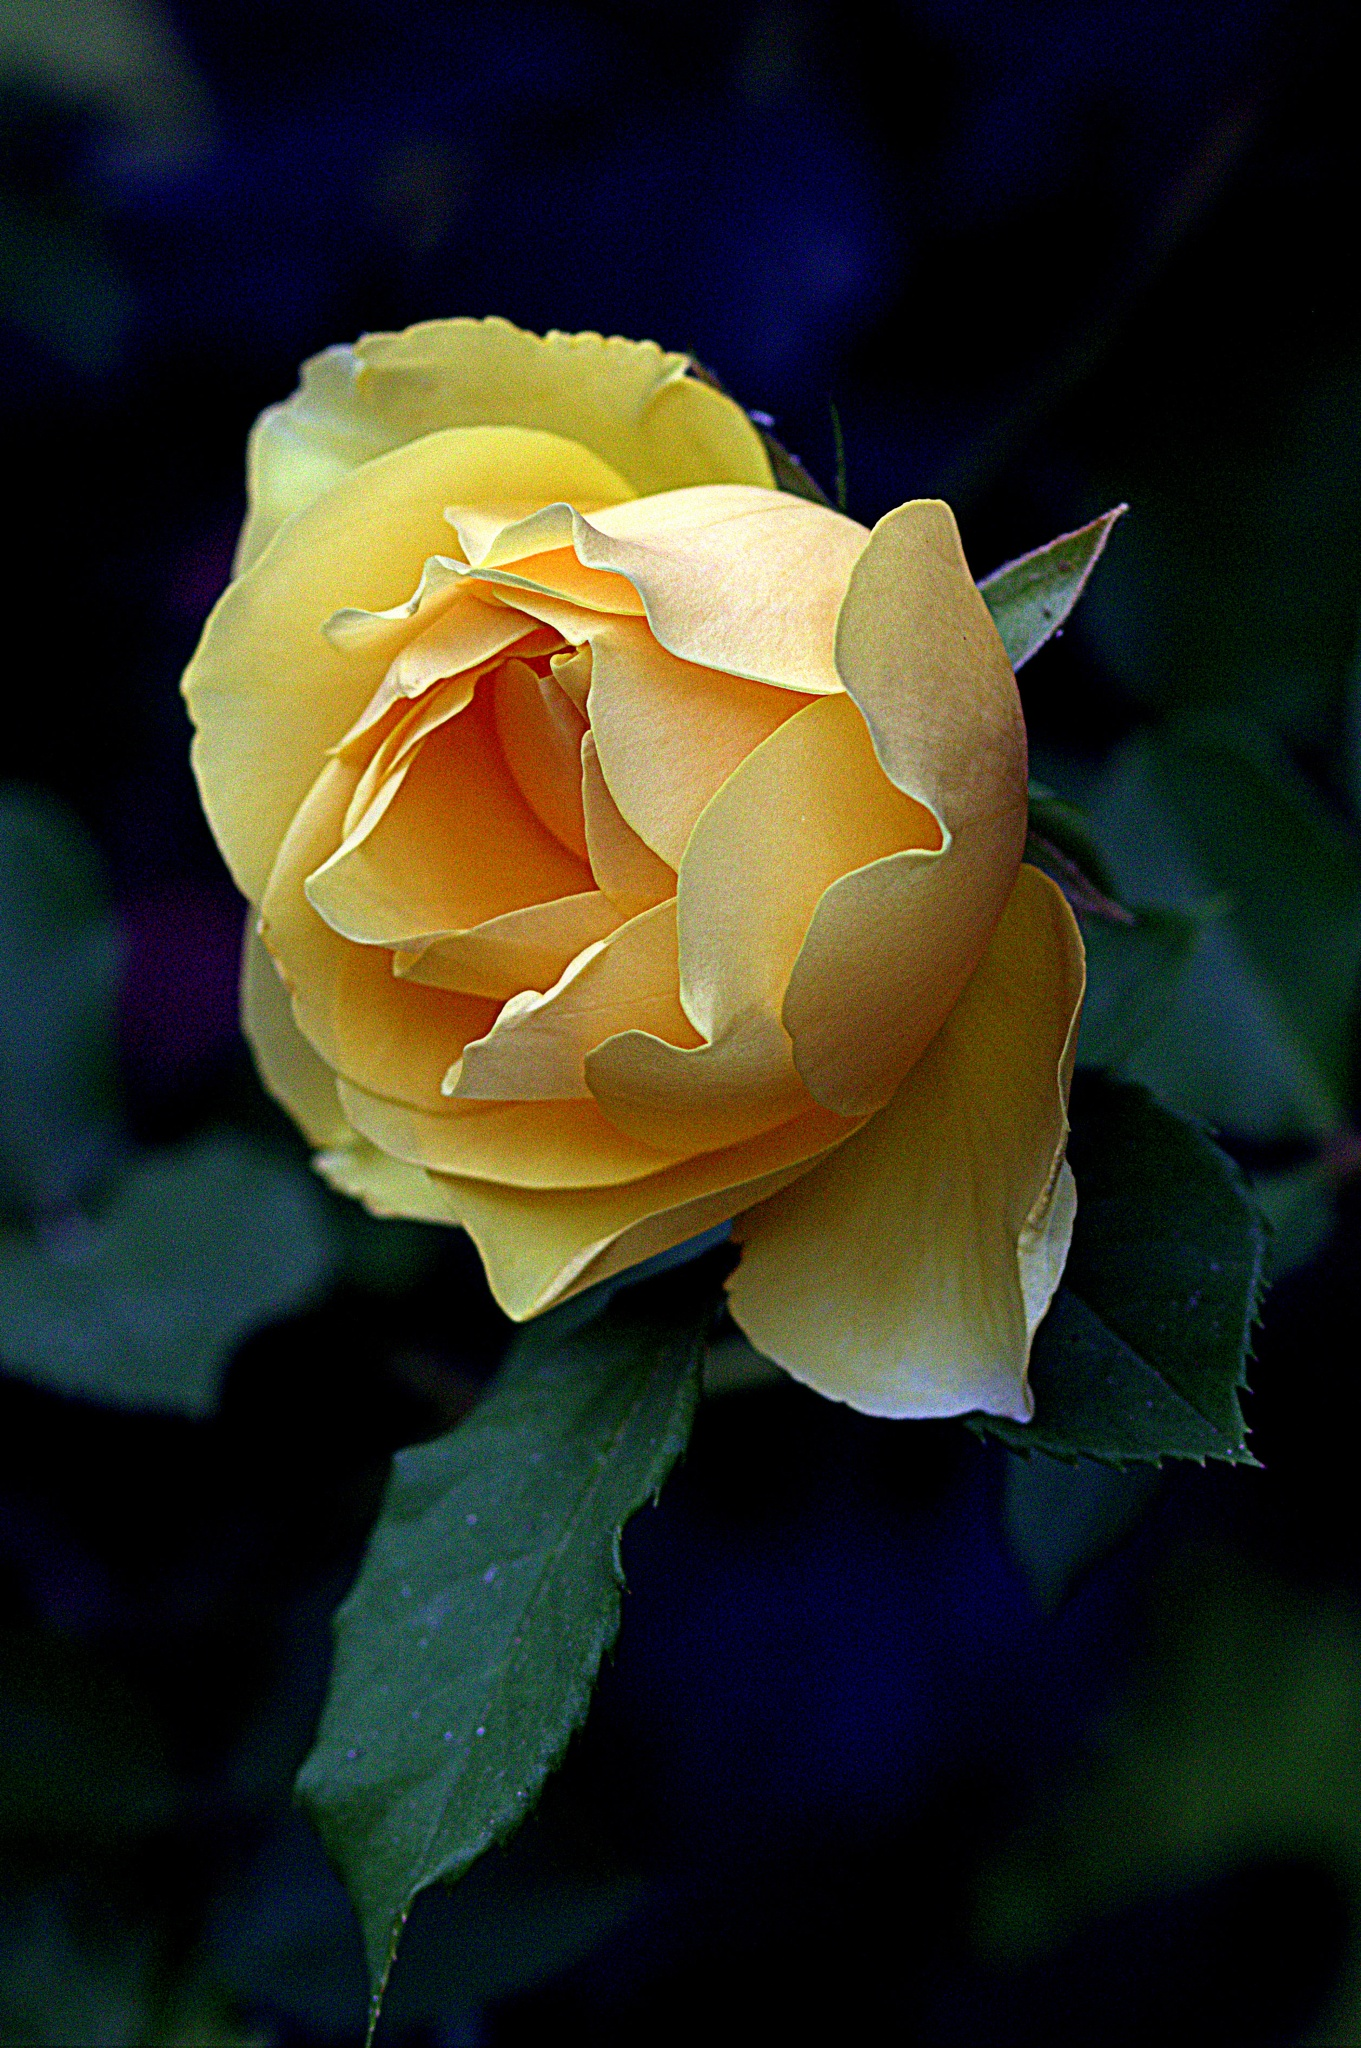 Since so many beautiful roses, another by leopold.brzin